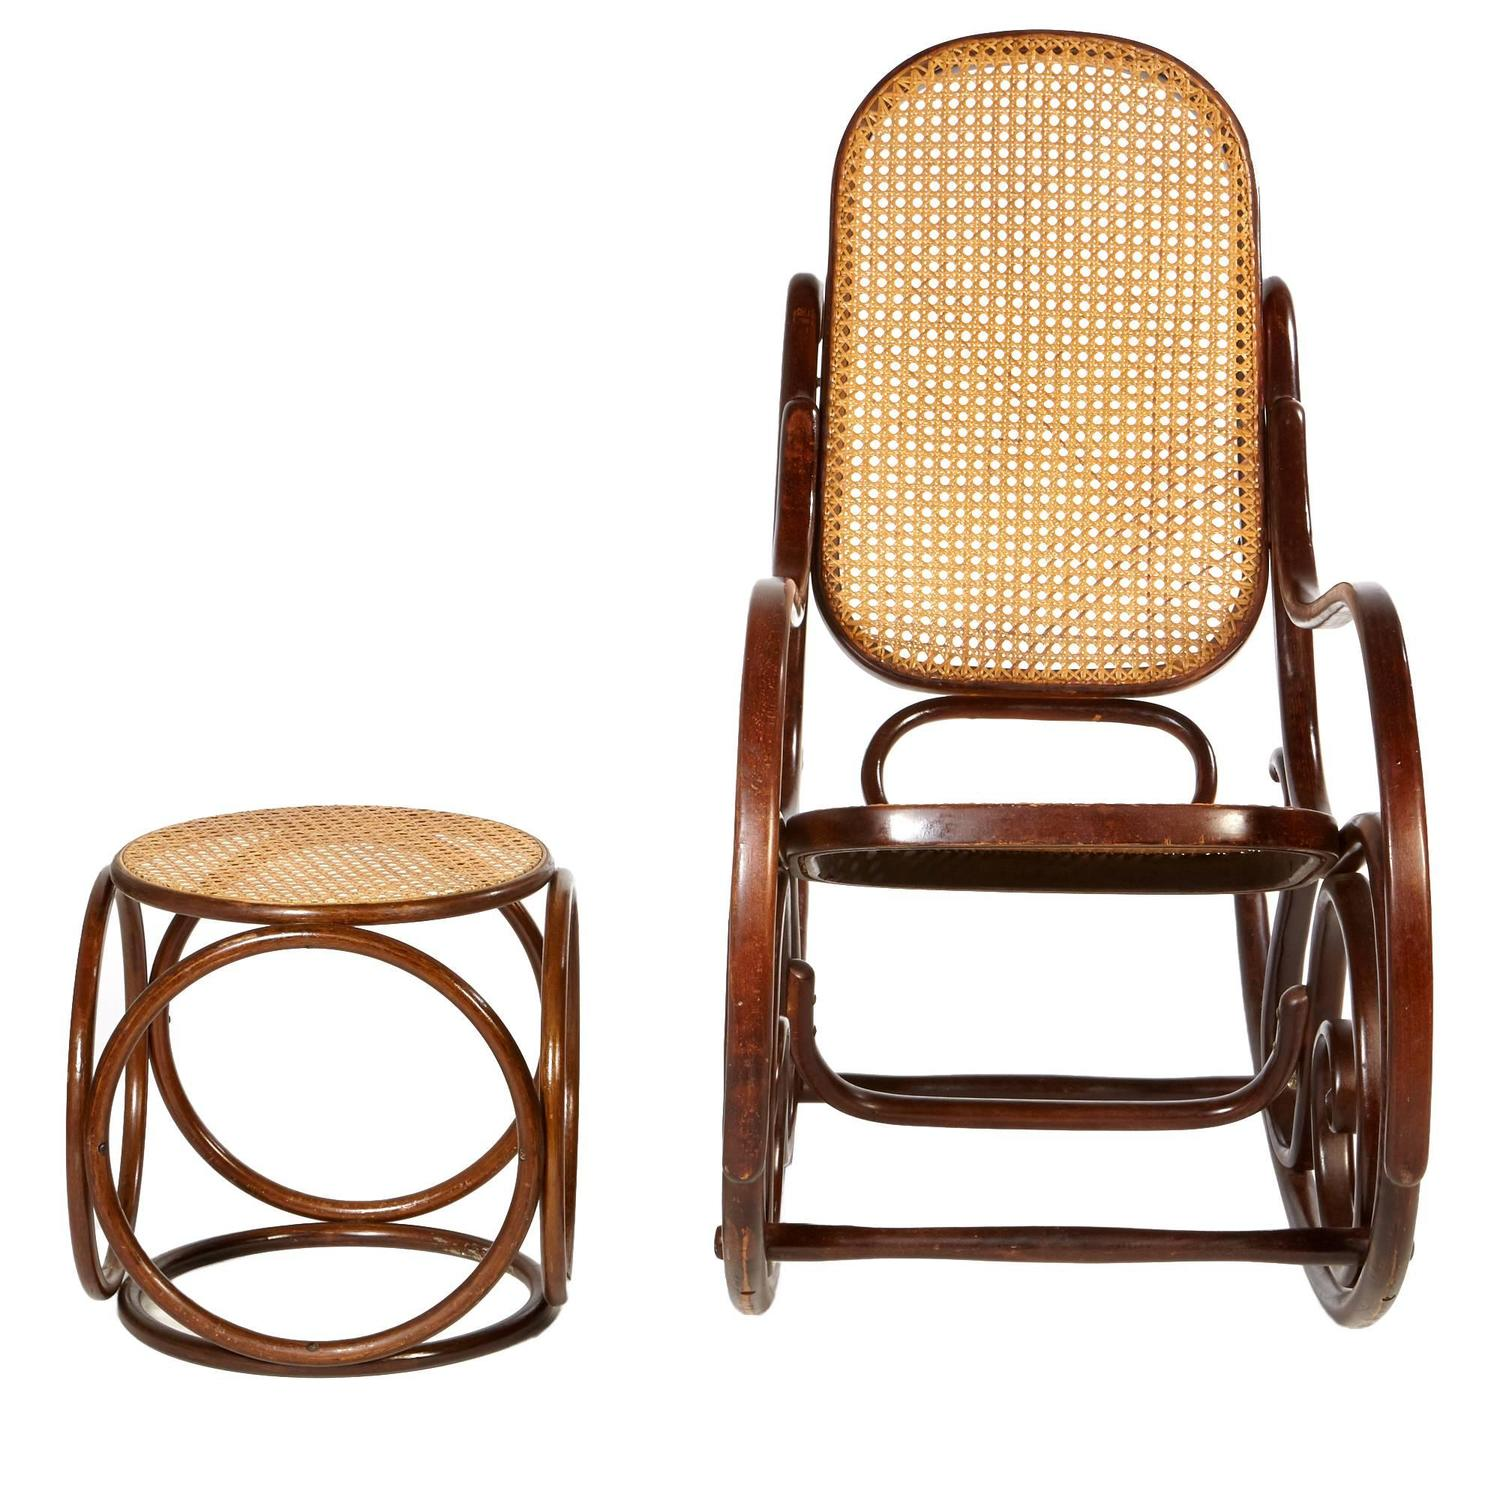 thonet chair styles mini electric wheelchair mid 20th century style rocking and ottoman